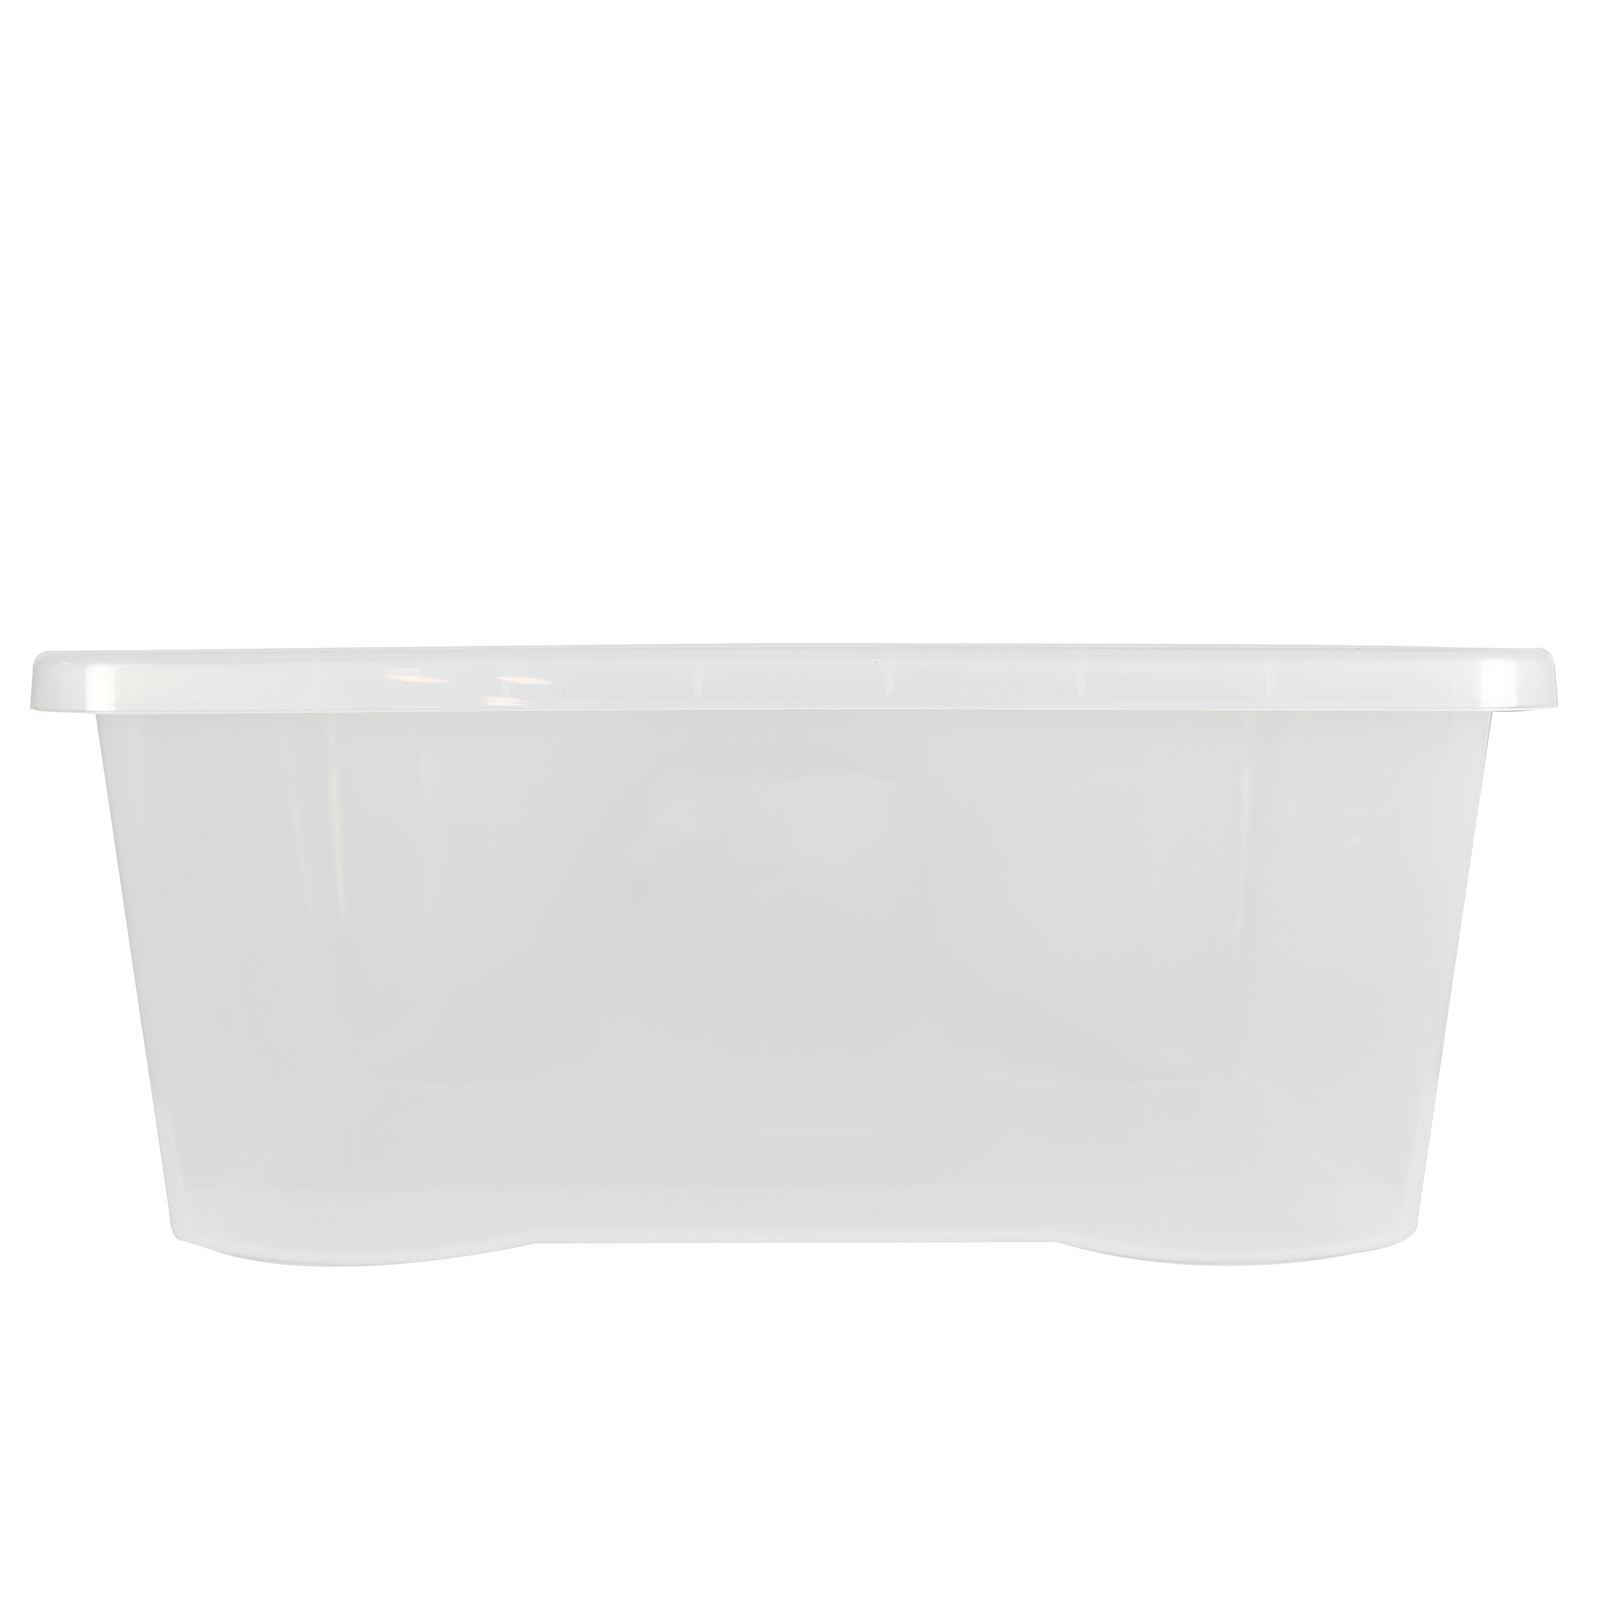 Wham-Crystal-Clear-Plastic-Storage-Box-Secure-Clip-on-Lid-Under-Bed-Space-Save thumbnail 36